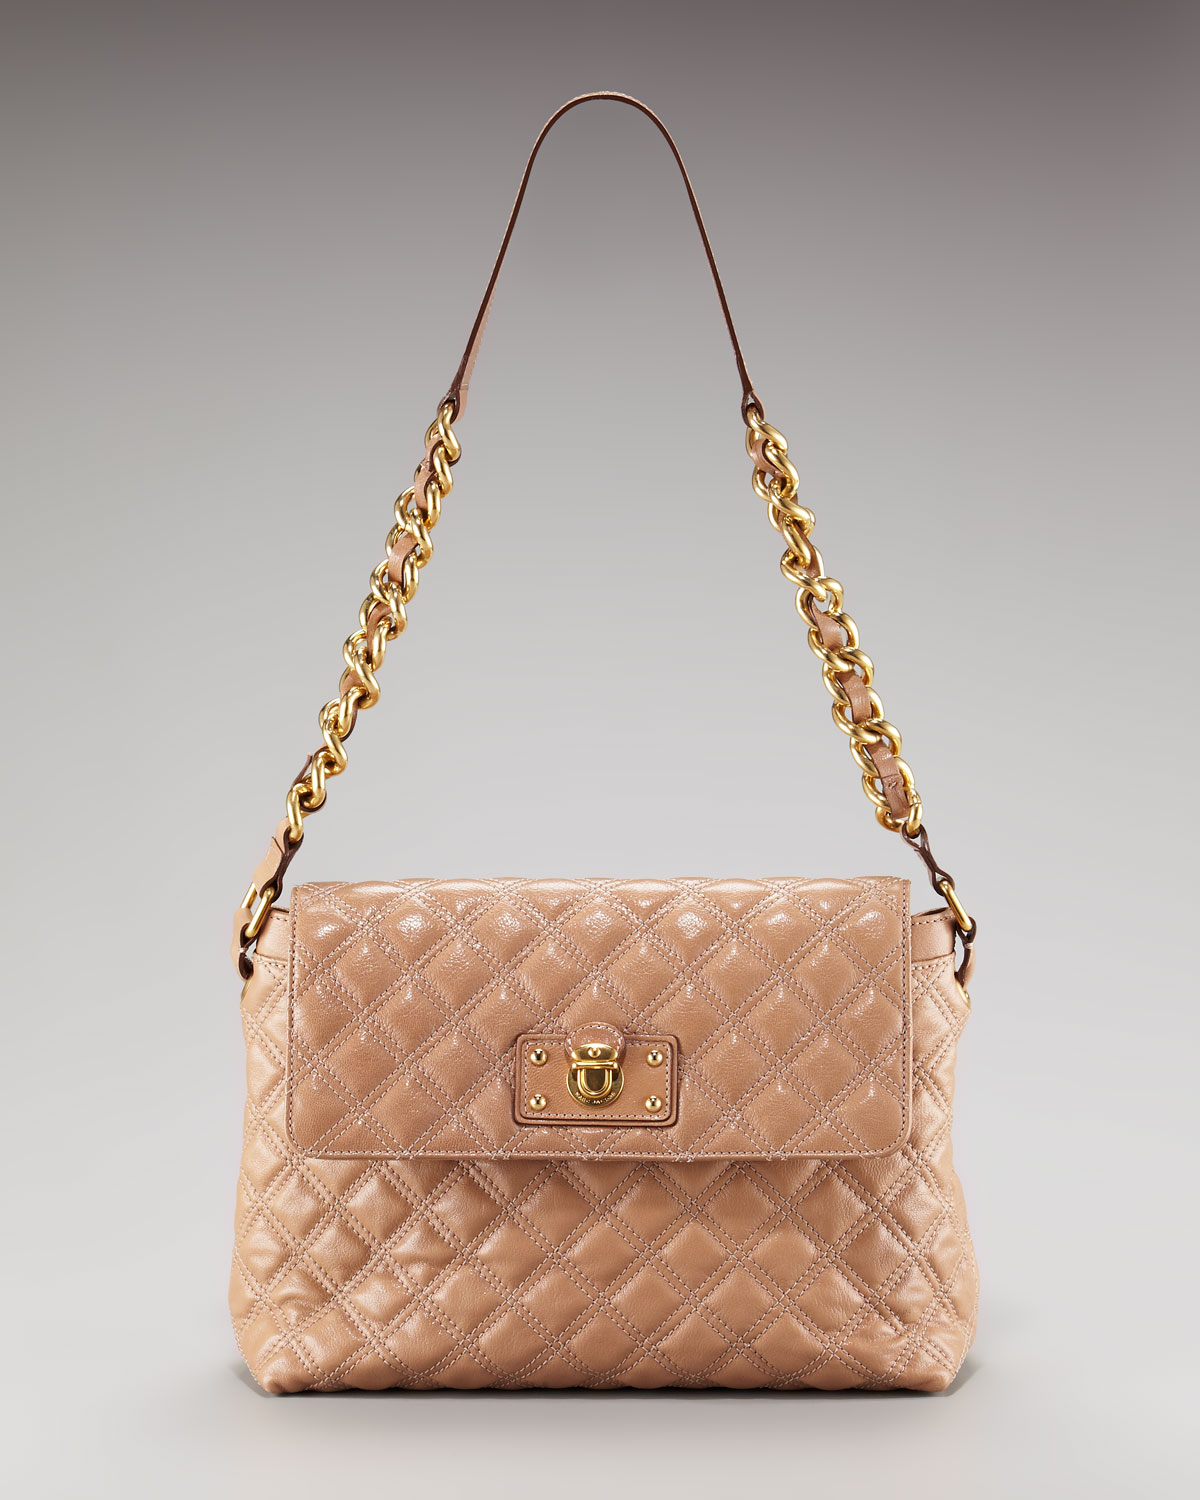 jacobs single women These deals are going fast 53% off marc jacobs women's the large single shoulder cross body handbag pink now $84000 was $1,80000.